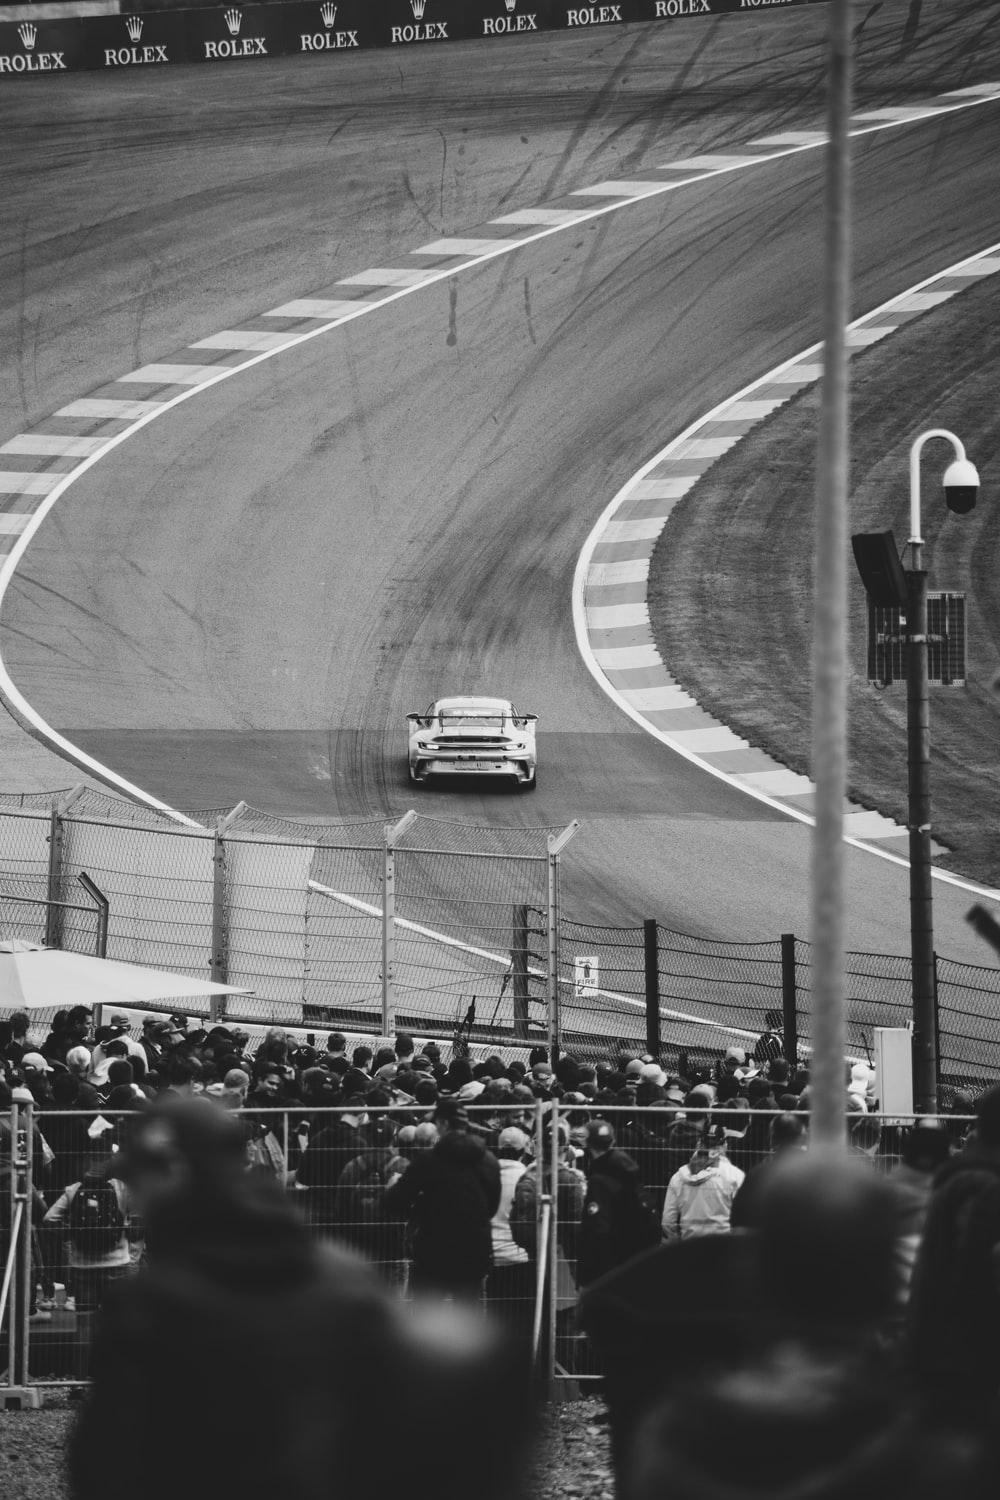 grayscale photo of people on race track